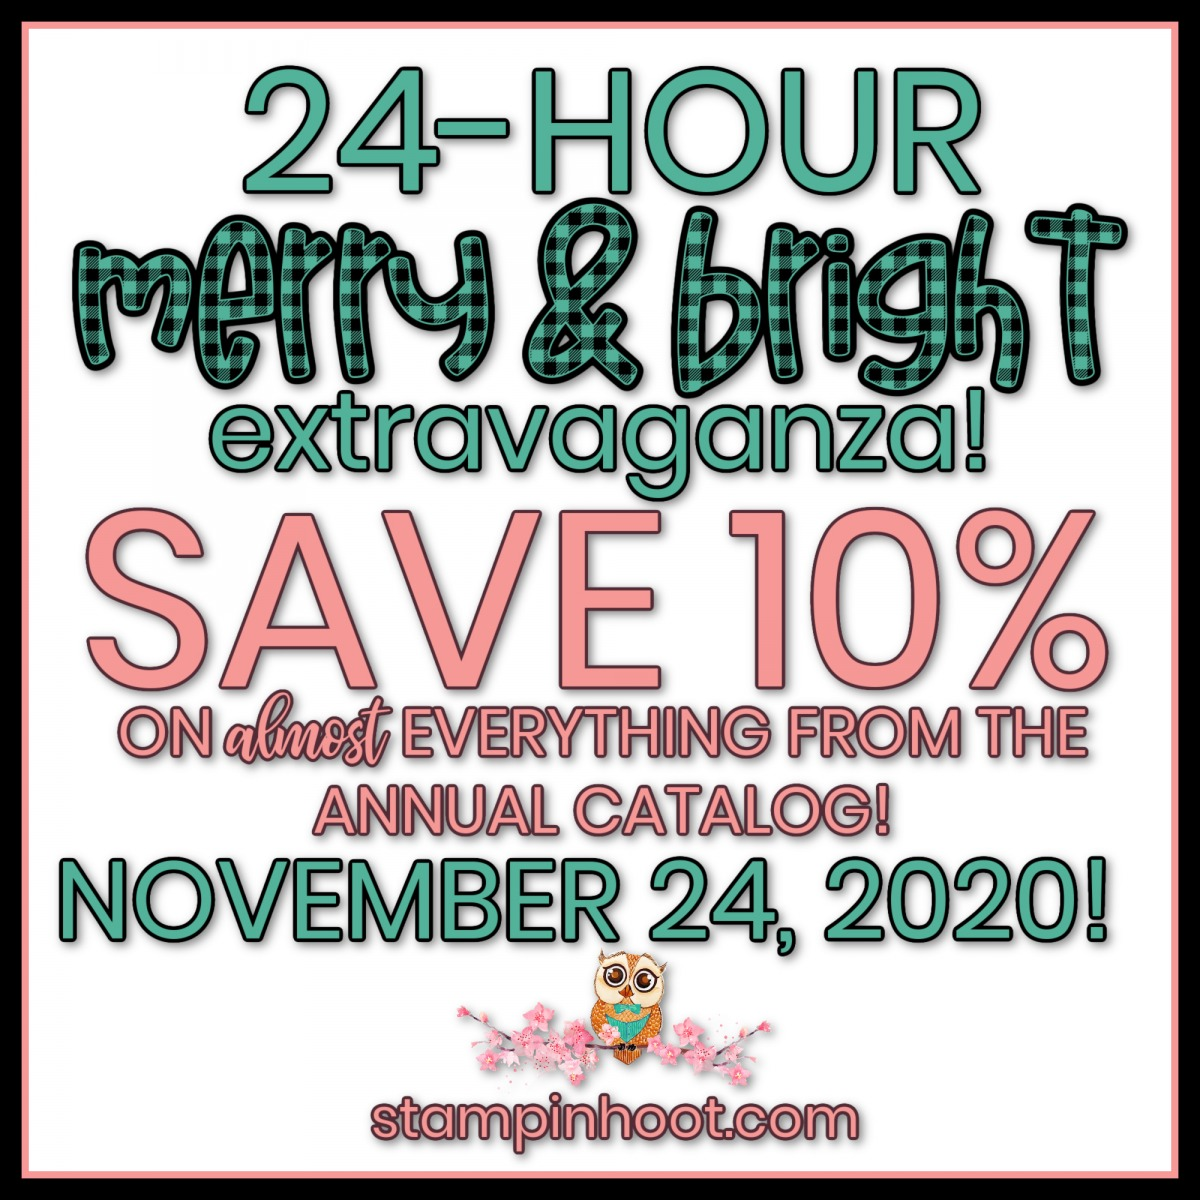 24 Hour Merry & Bright Extravaganza